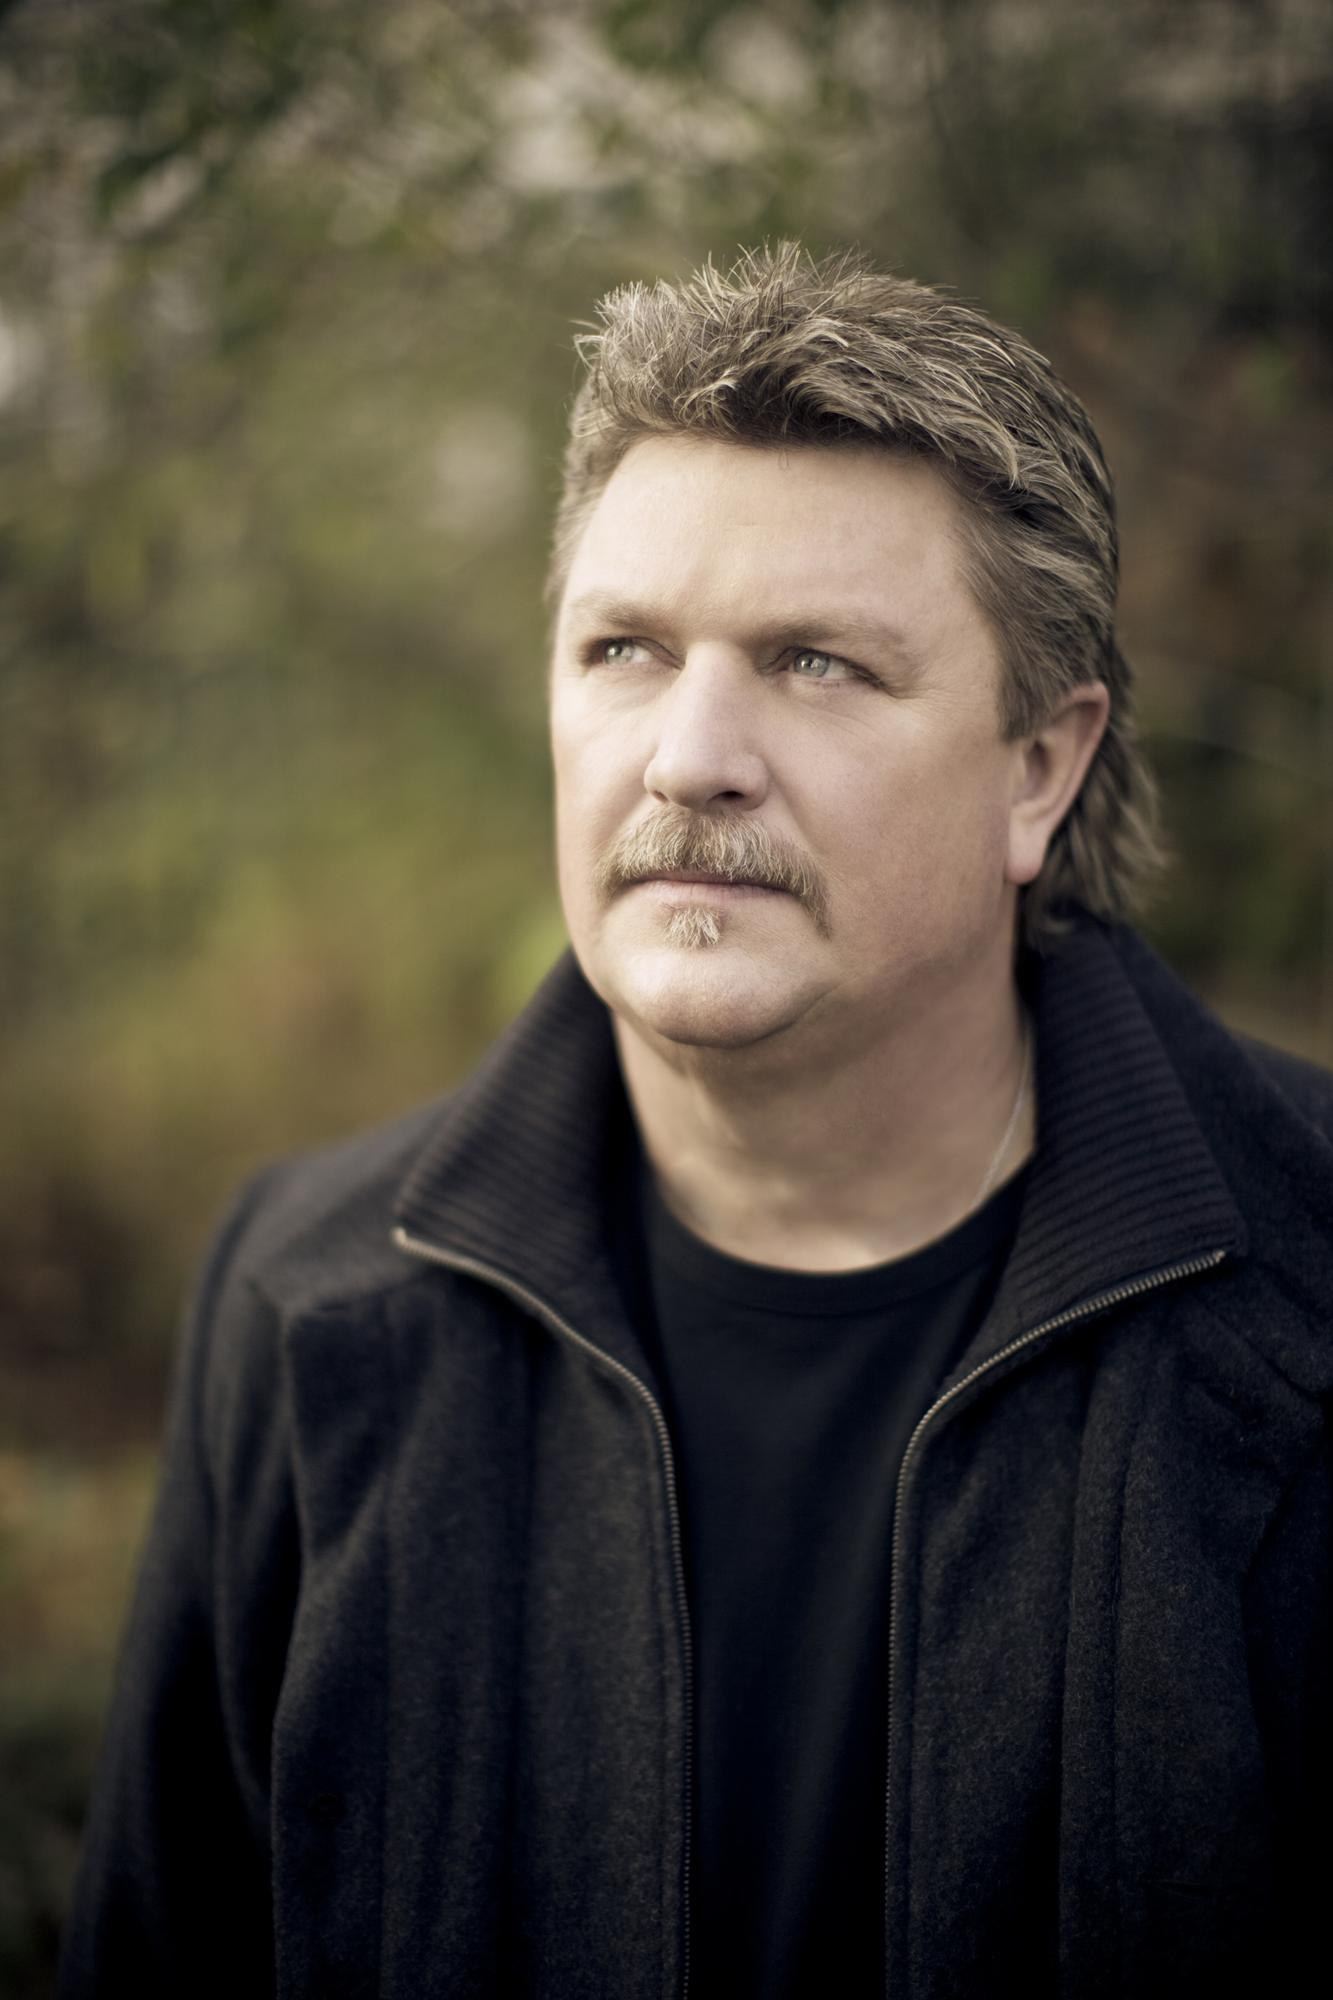 Master Ticket >> Joe Diffie at the Tioga County Fair Tickets in Wellsboro, PA, United States